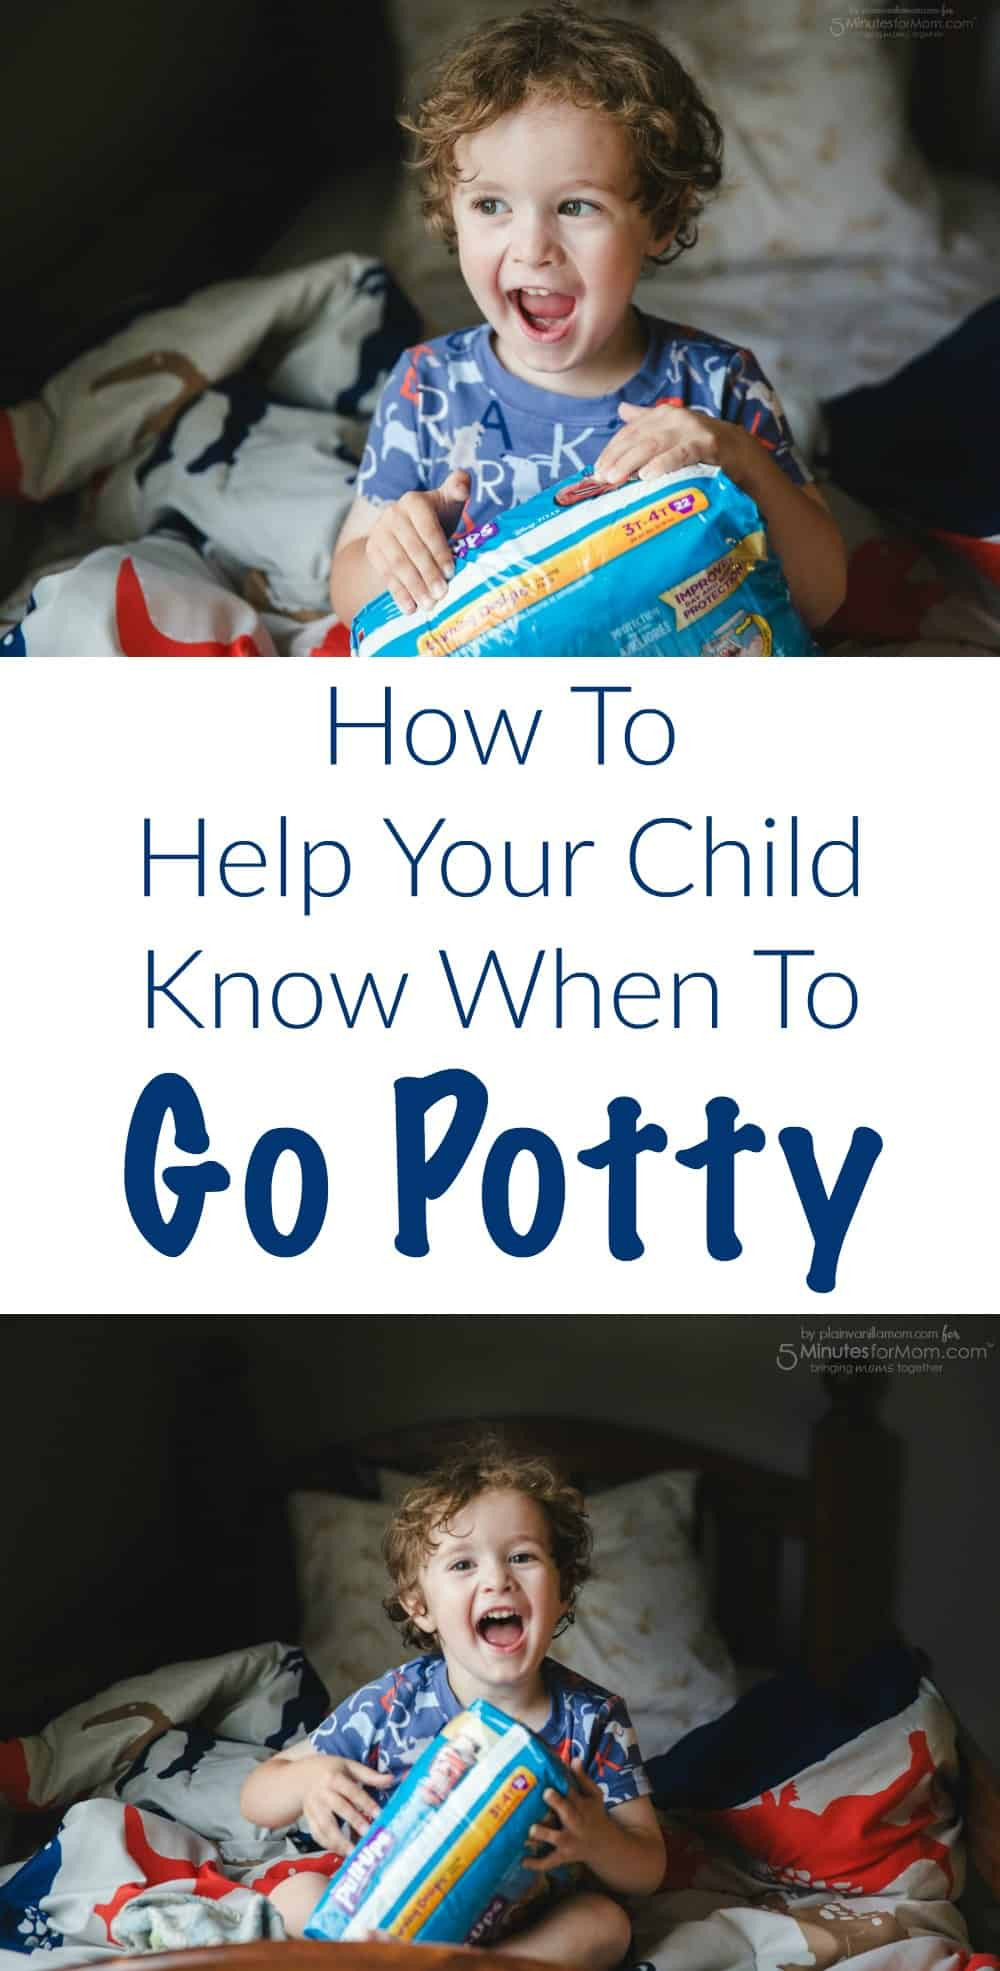 How to Help Your Child Know When To Go Potty